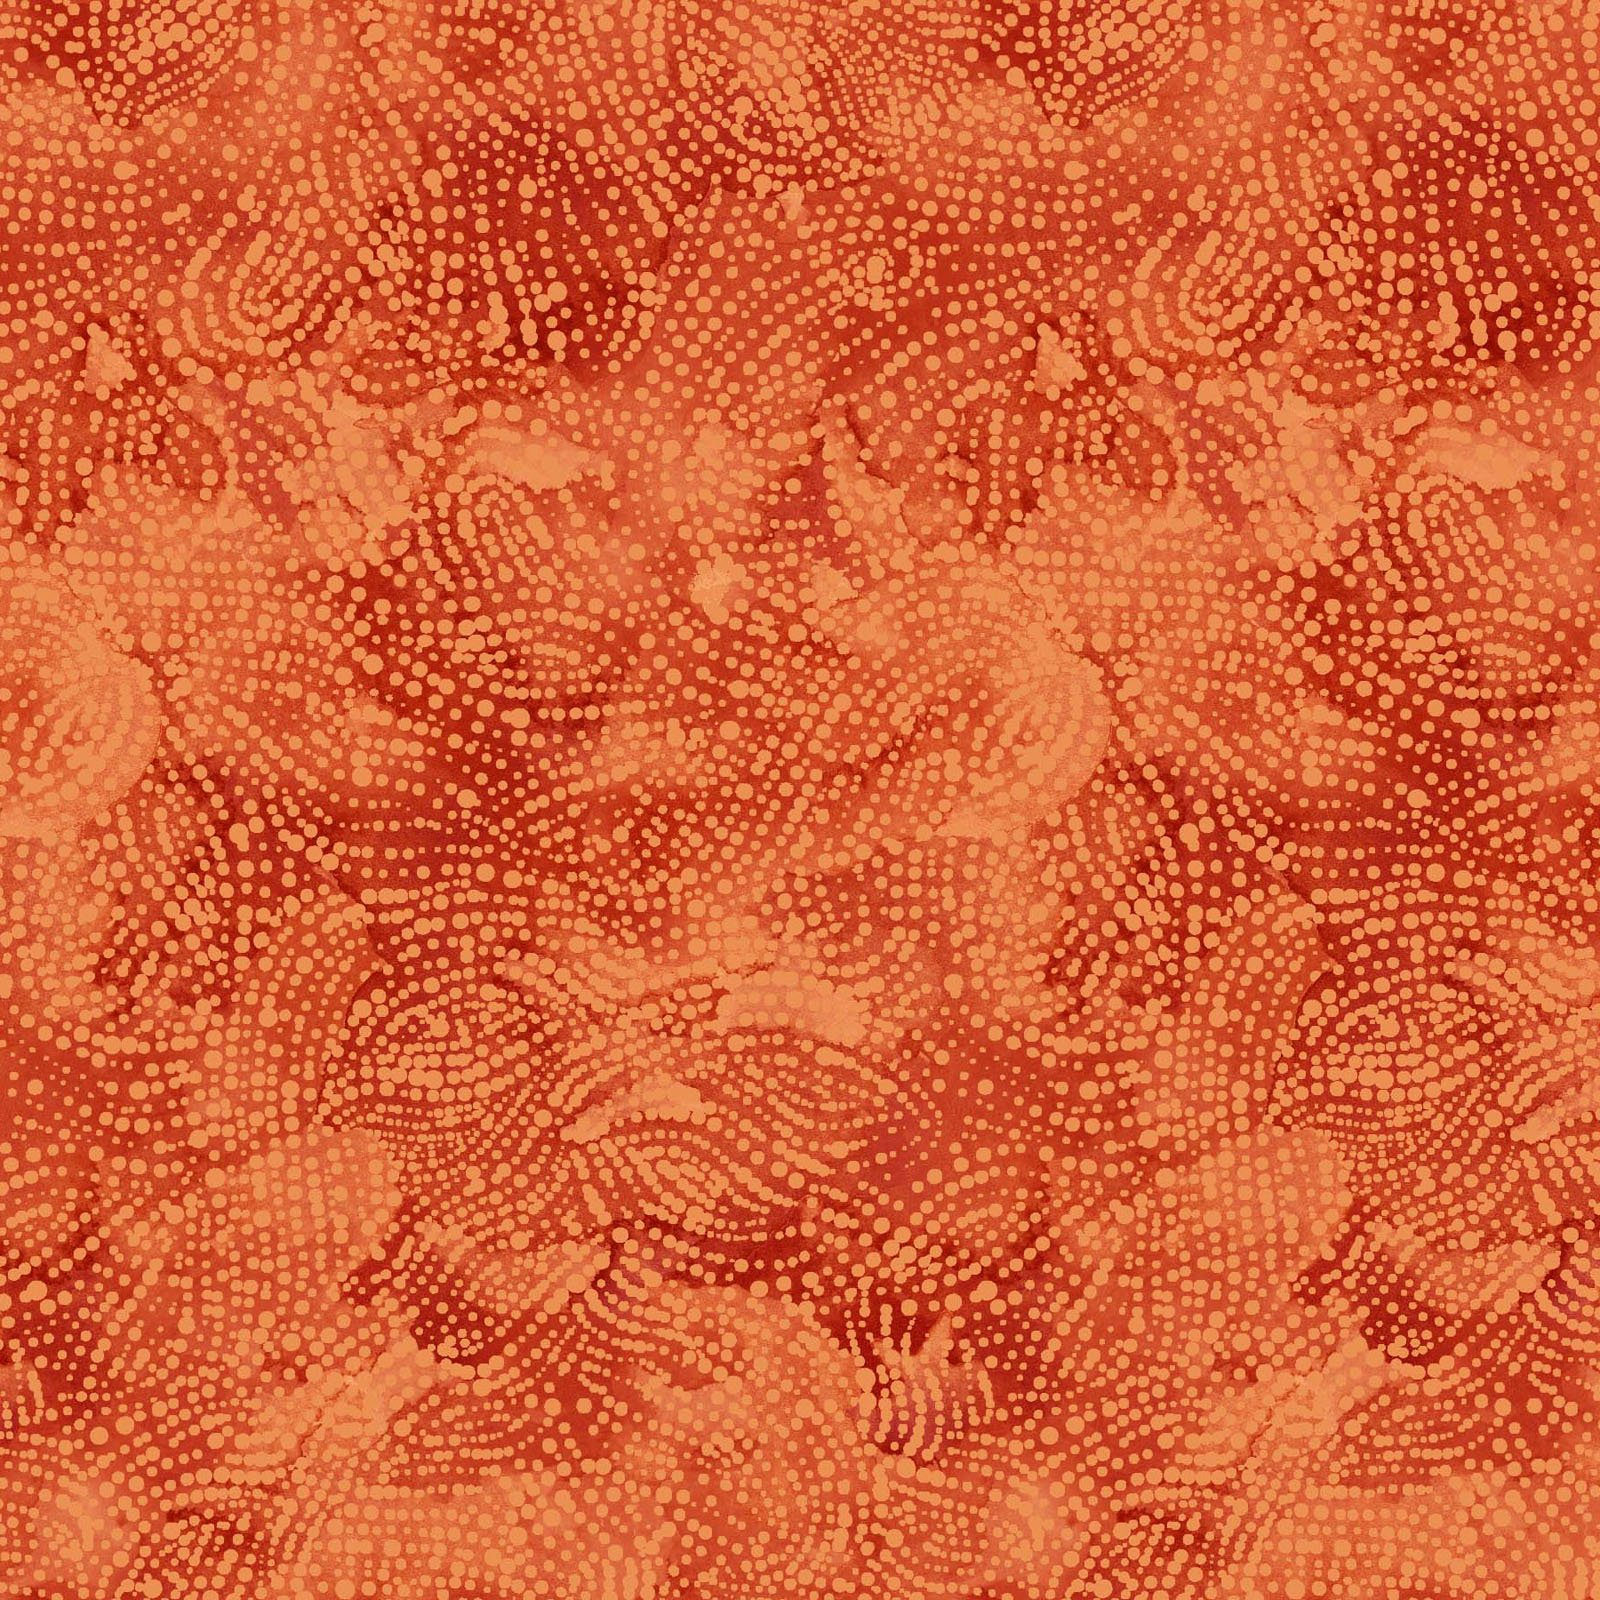 SERE-4492 RO - SERENITY BY JETTI HOME RED ORANGE - ARRIVING IN JULY 2021